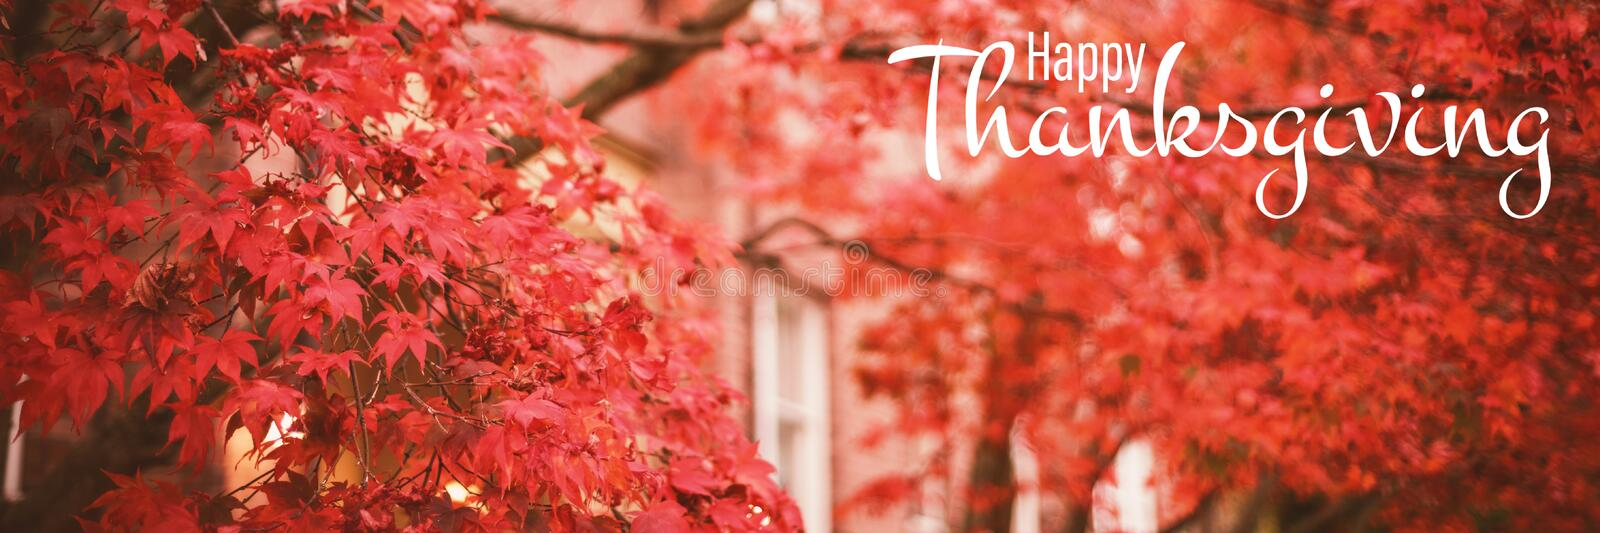 Composite image of illustration of happy thanksgiving day text greeting. Illustration of happy thanksgiving day text greeting against low angle view of autumn royalty free illustration